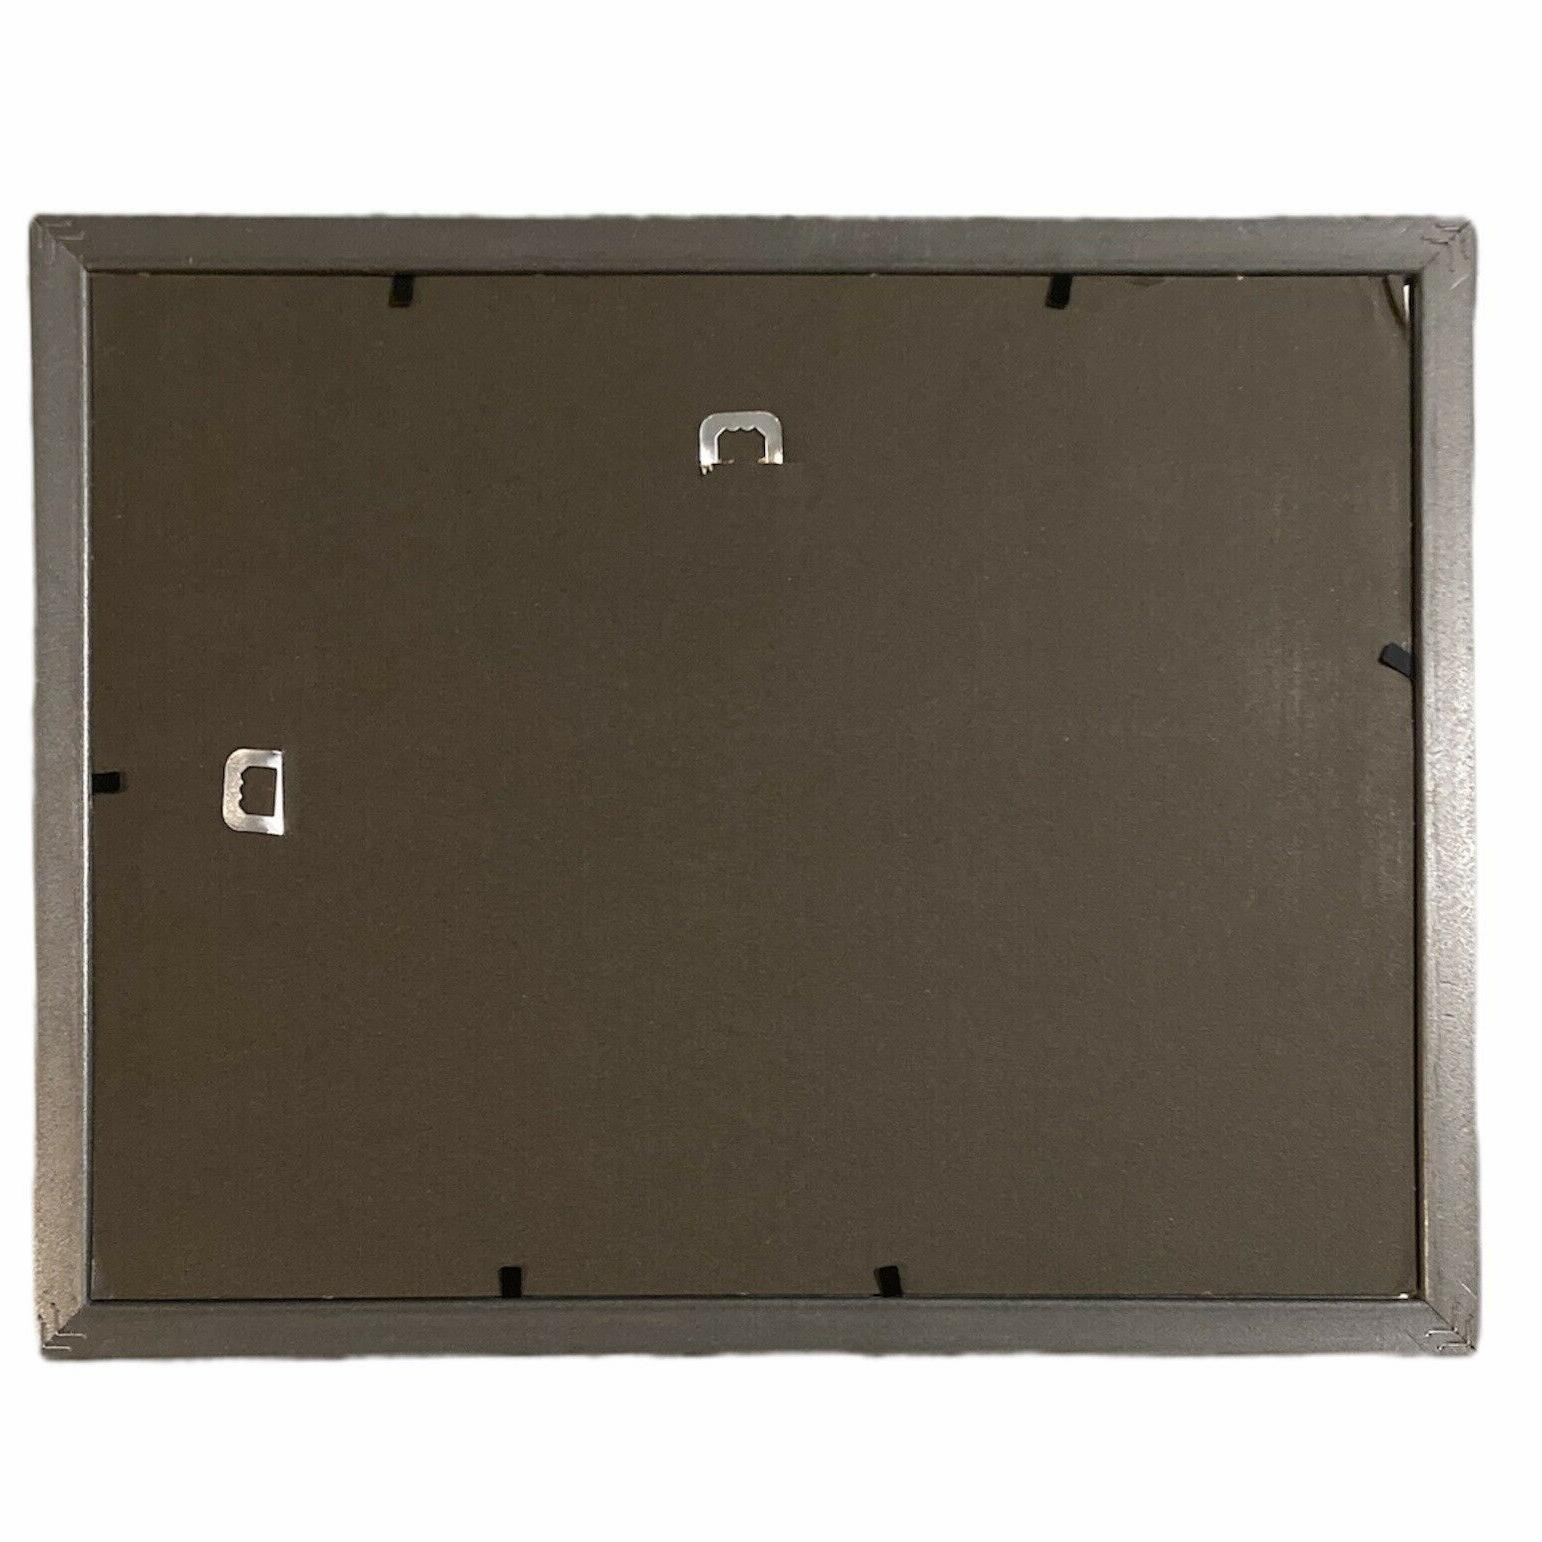 8.5x11 Brown Wall Mount Design Picture